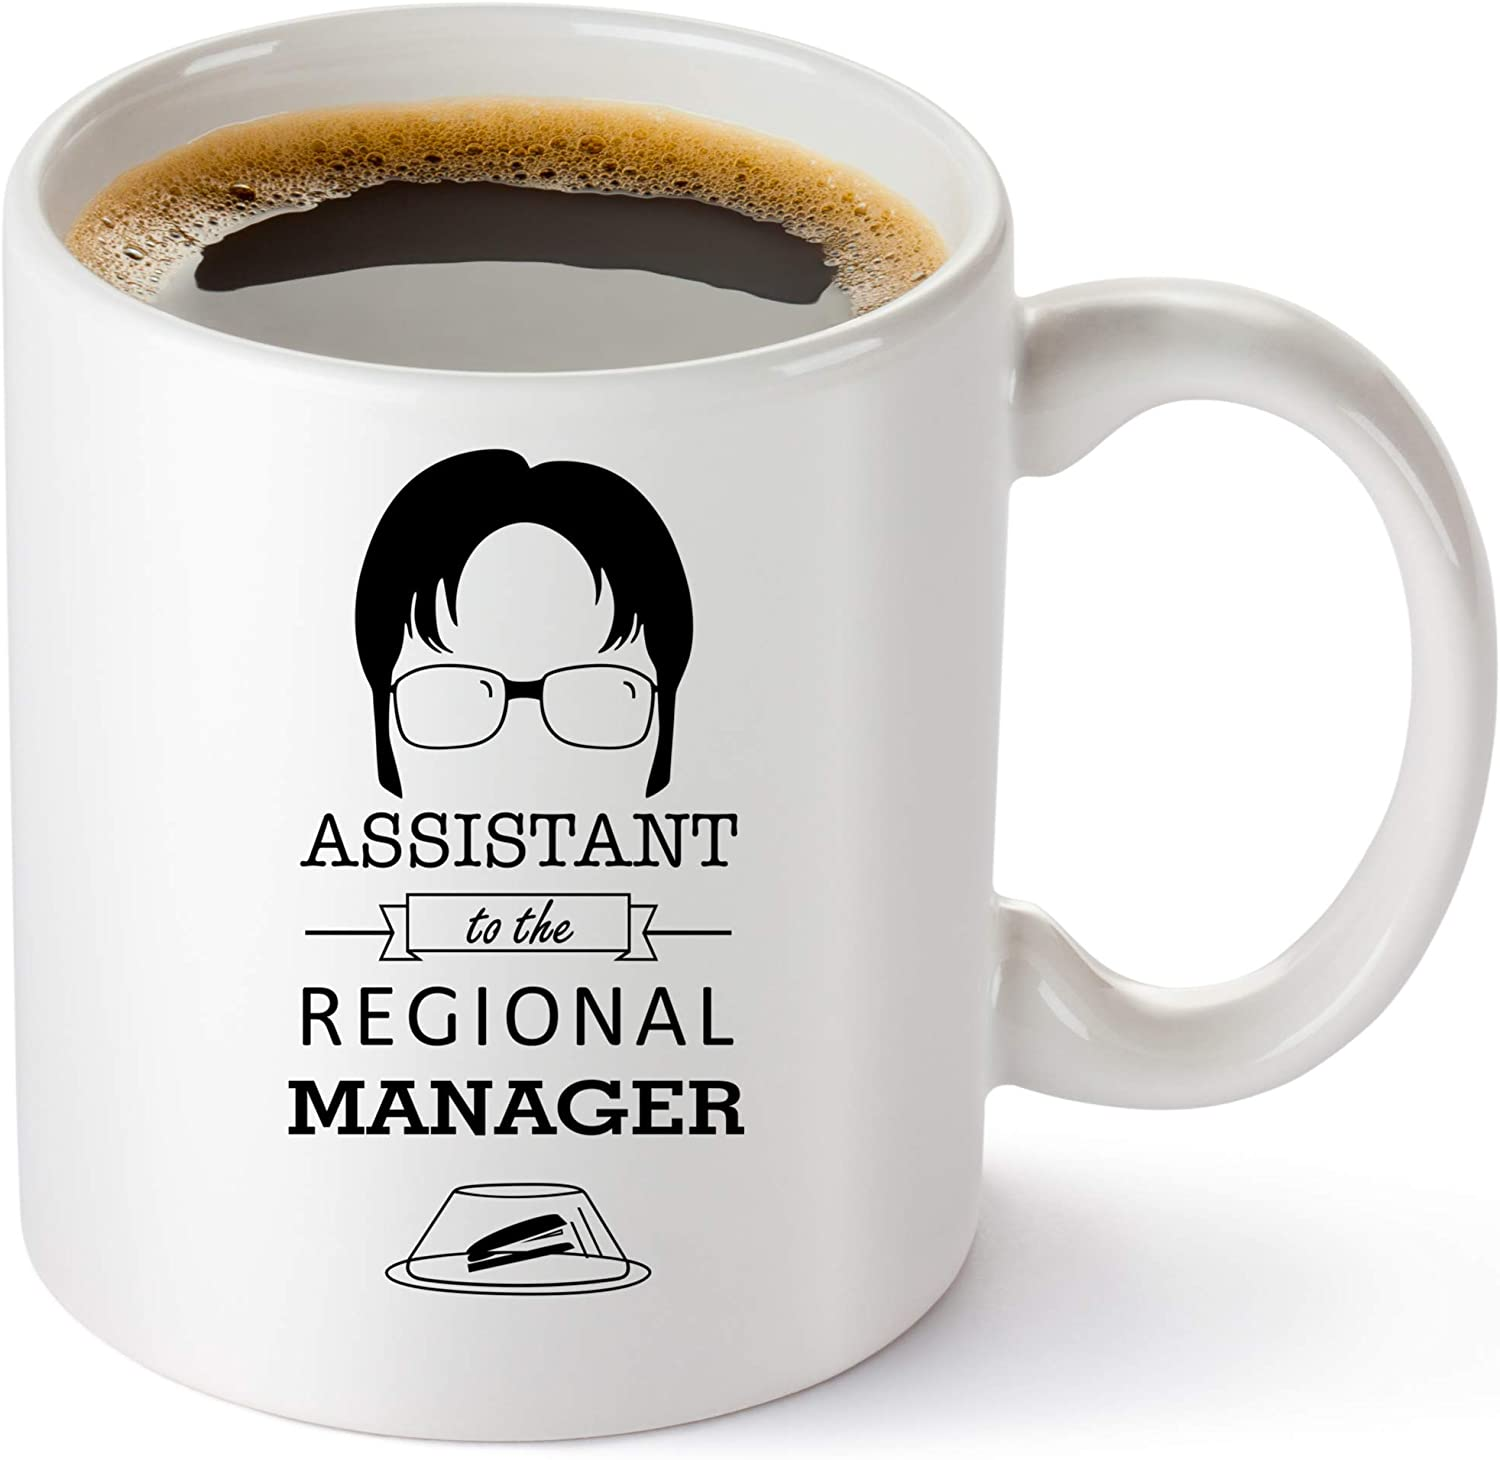 Assistant To The Regional Manager Coffee Mug - The Office Gifts - Funny Dwight Schrute The Office Merchandise - 11oz collectible Dunder Mifflin The Office Mug For Men And Women